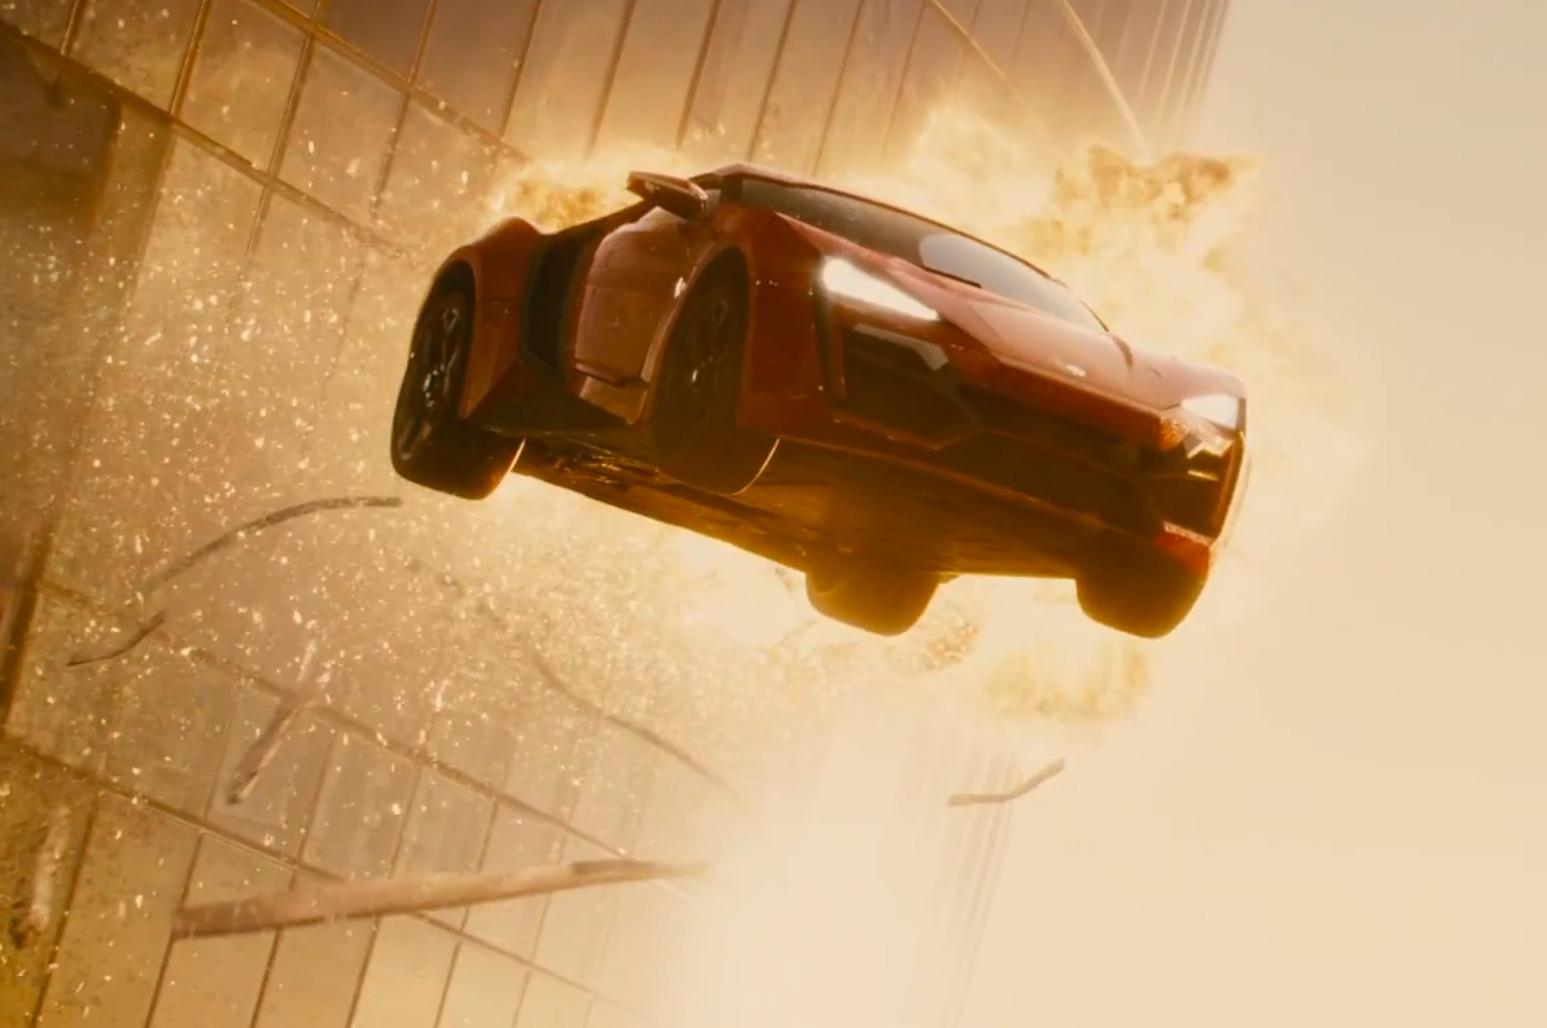 Could Furious 7's Double-Skyscraper Jump Really Happen? We Asked a Physicist.